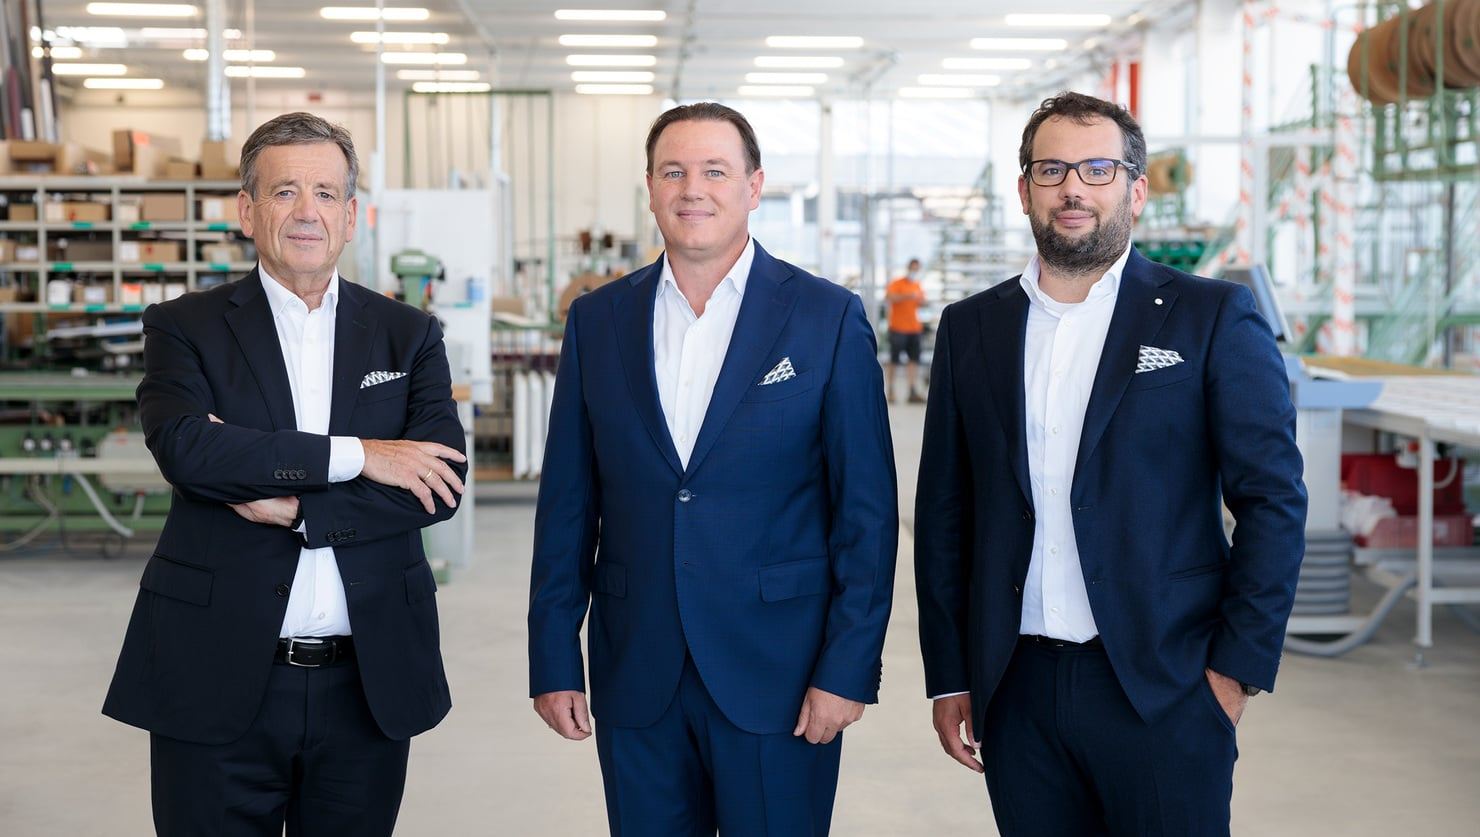 New Board of Directors: Finstral is committed to continuity.